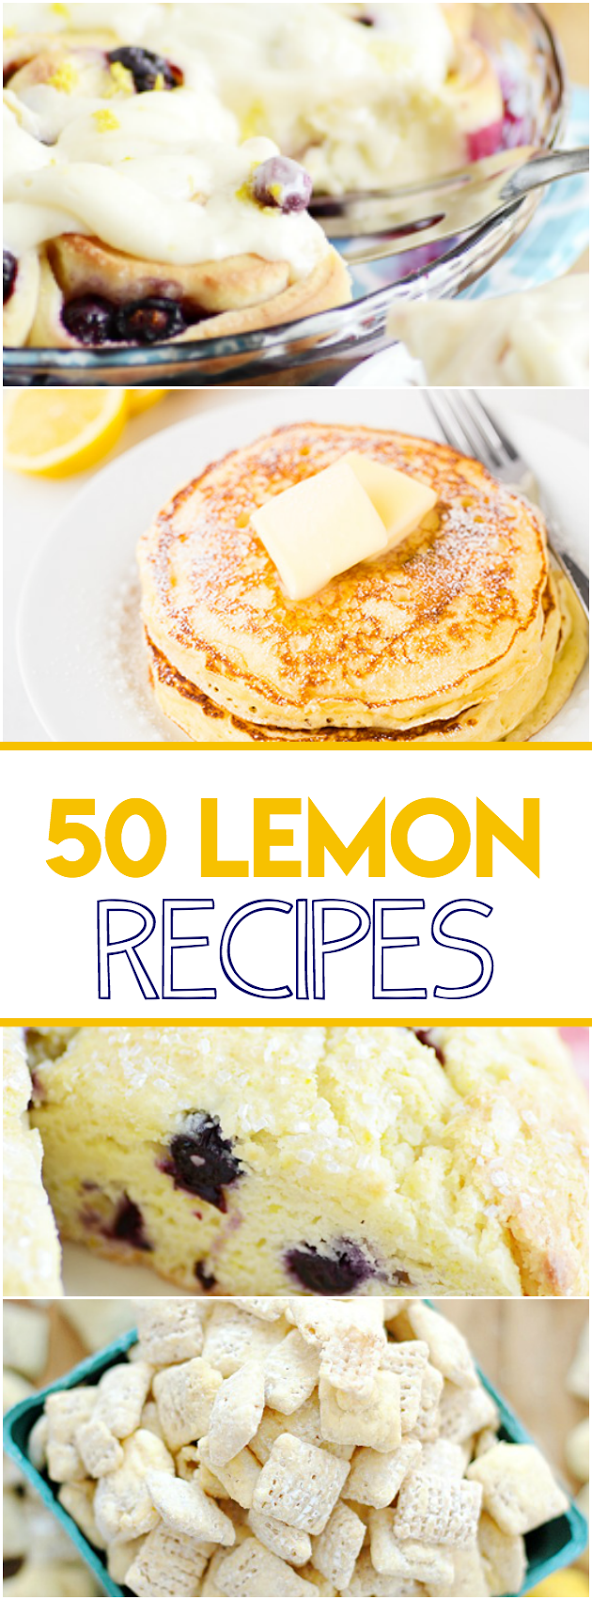 More than 50 fabulous lemon recipes including Lemon Blueberry Sweet Rolls, Lemon Cheesecake, and Lemon Poppyseed Pancakes!